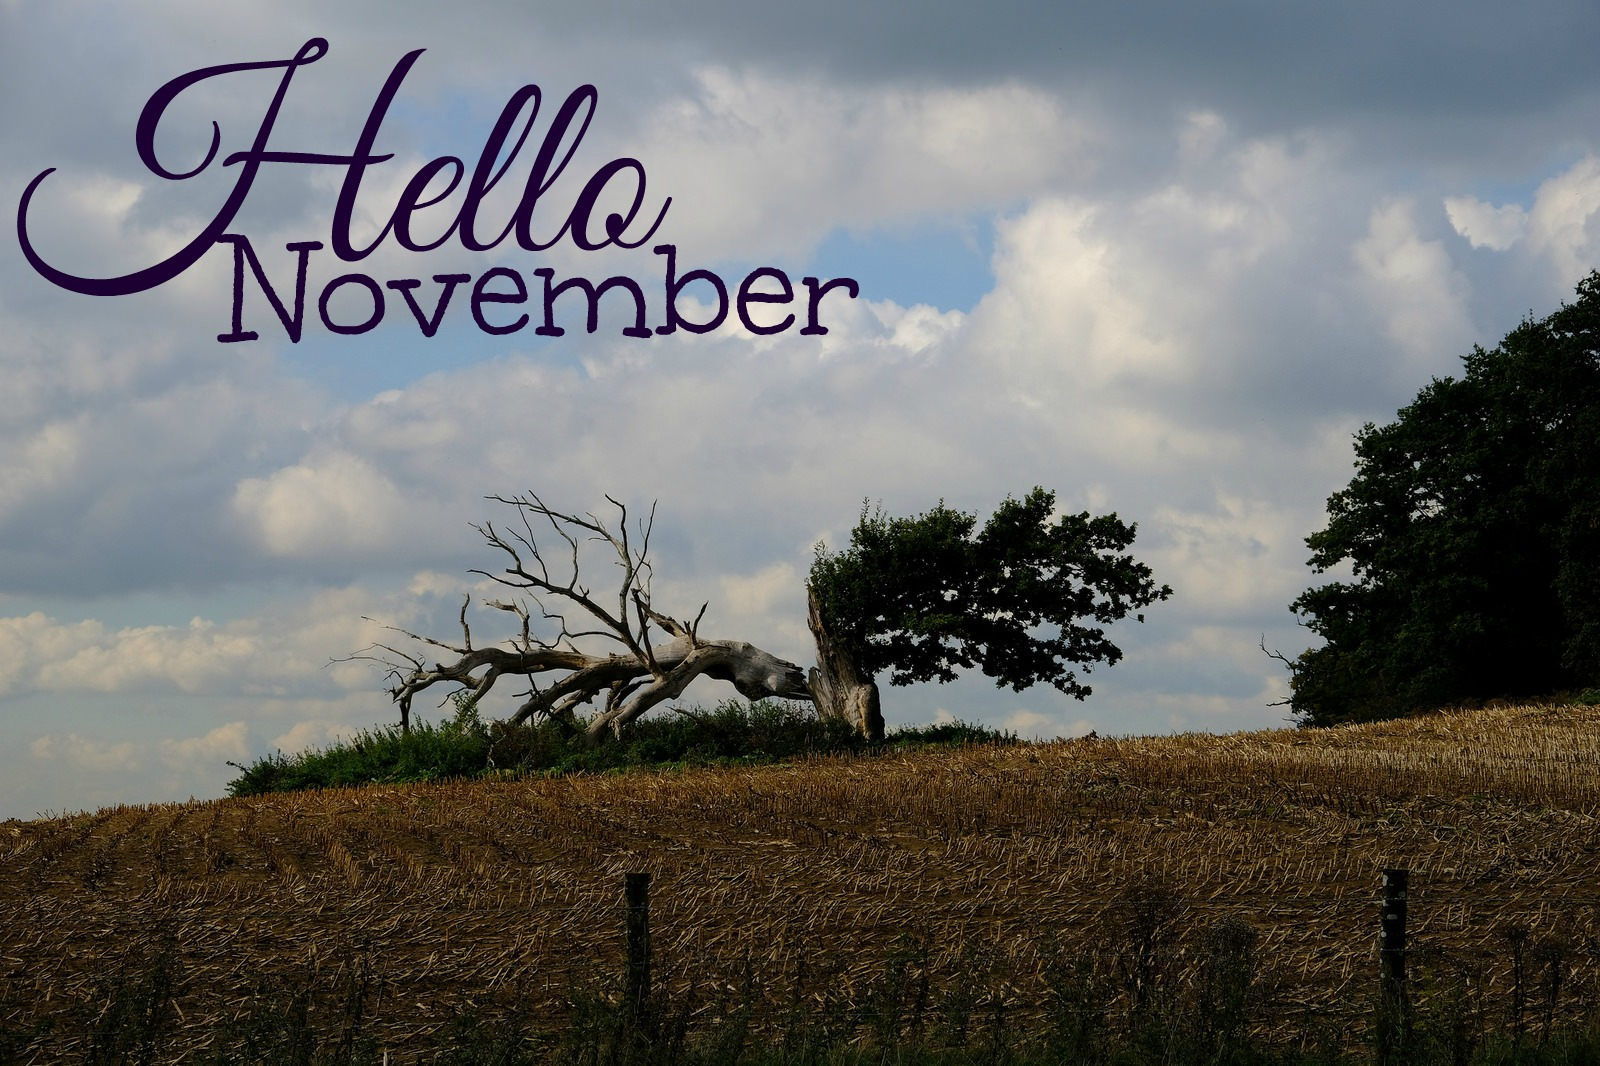 Formidable Joy | Formidable Joy Blog | Hello November | Taste Of London | A Street Cat Named Bob | My Dead Boyfriend | Twenty One Pilots | 21 Pilots | Nicola Yoon | The Sun Is Also A Star |139 Copeland Road